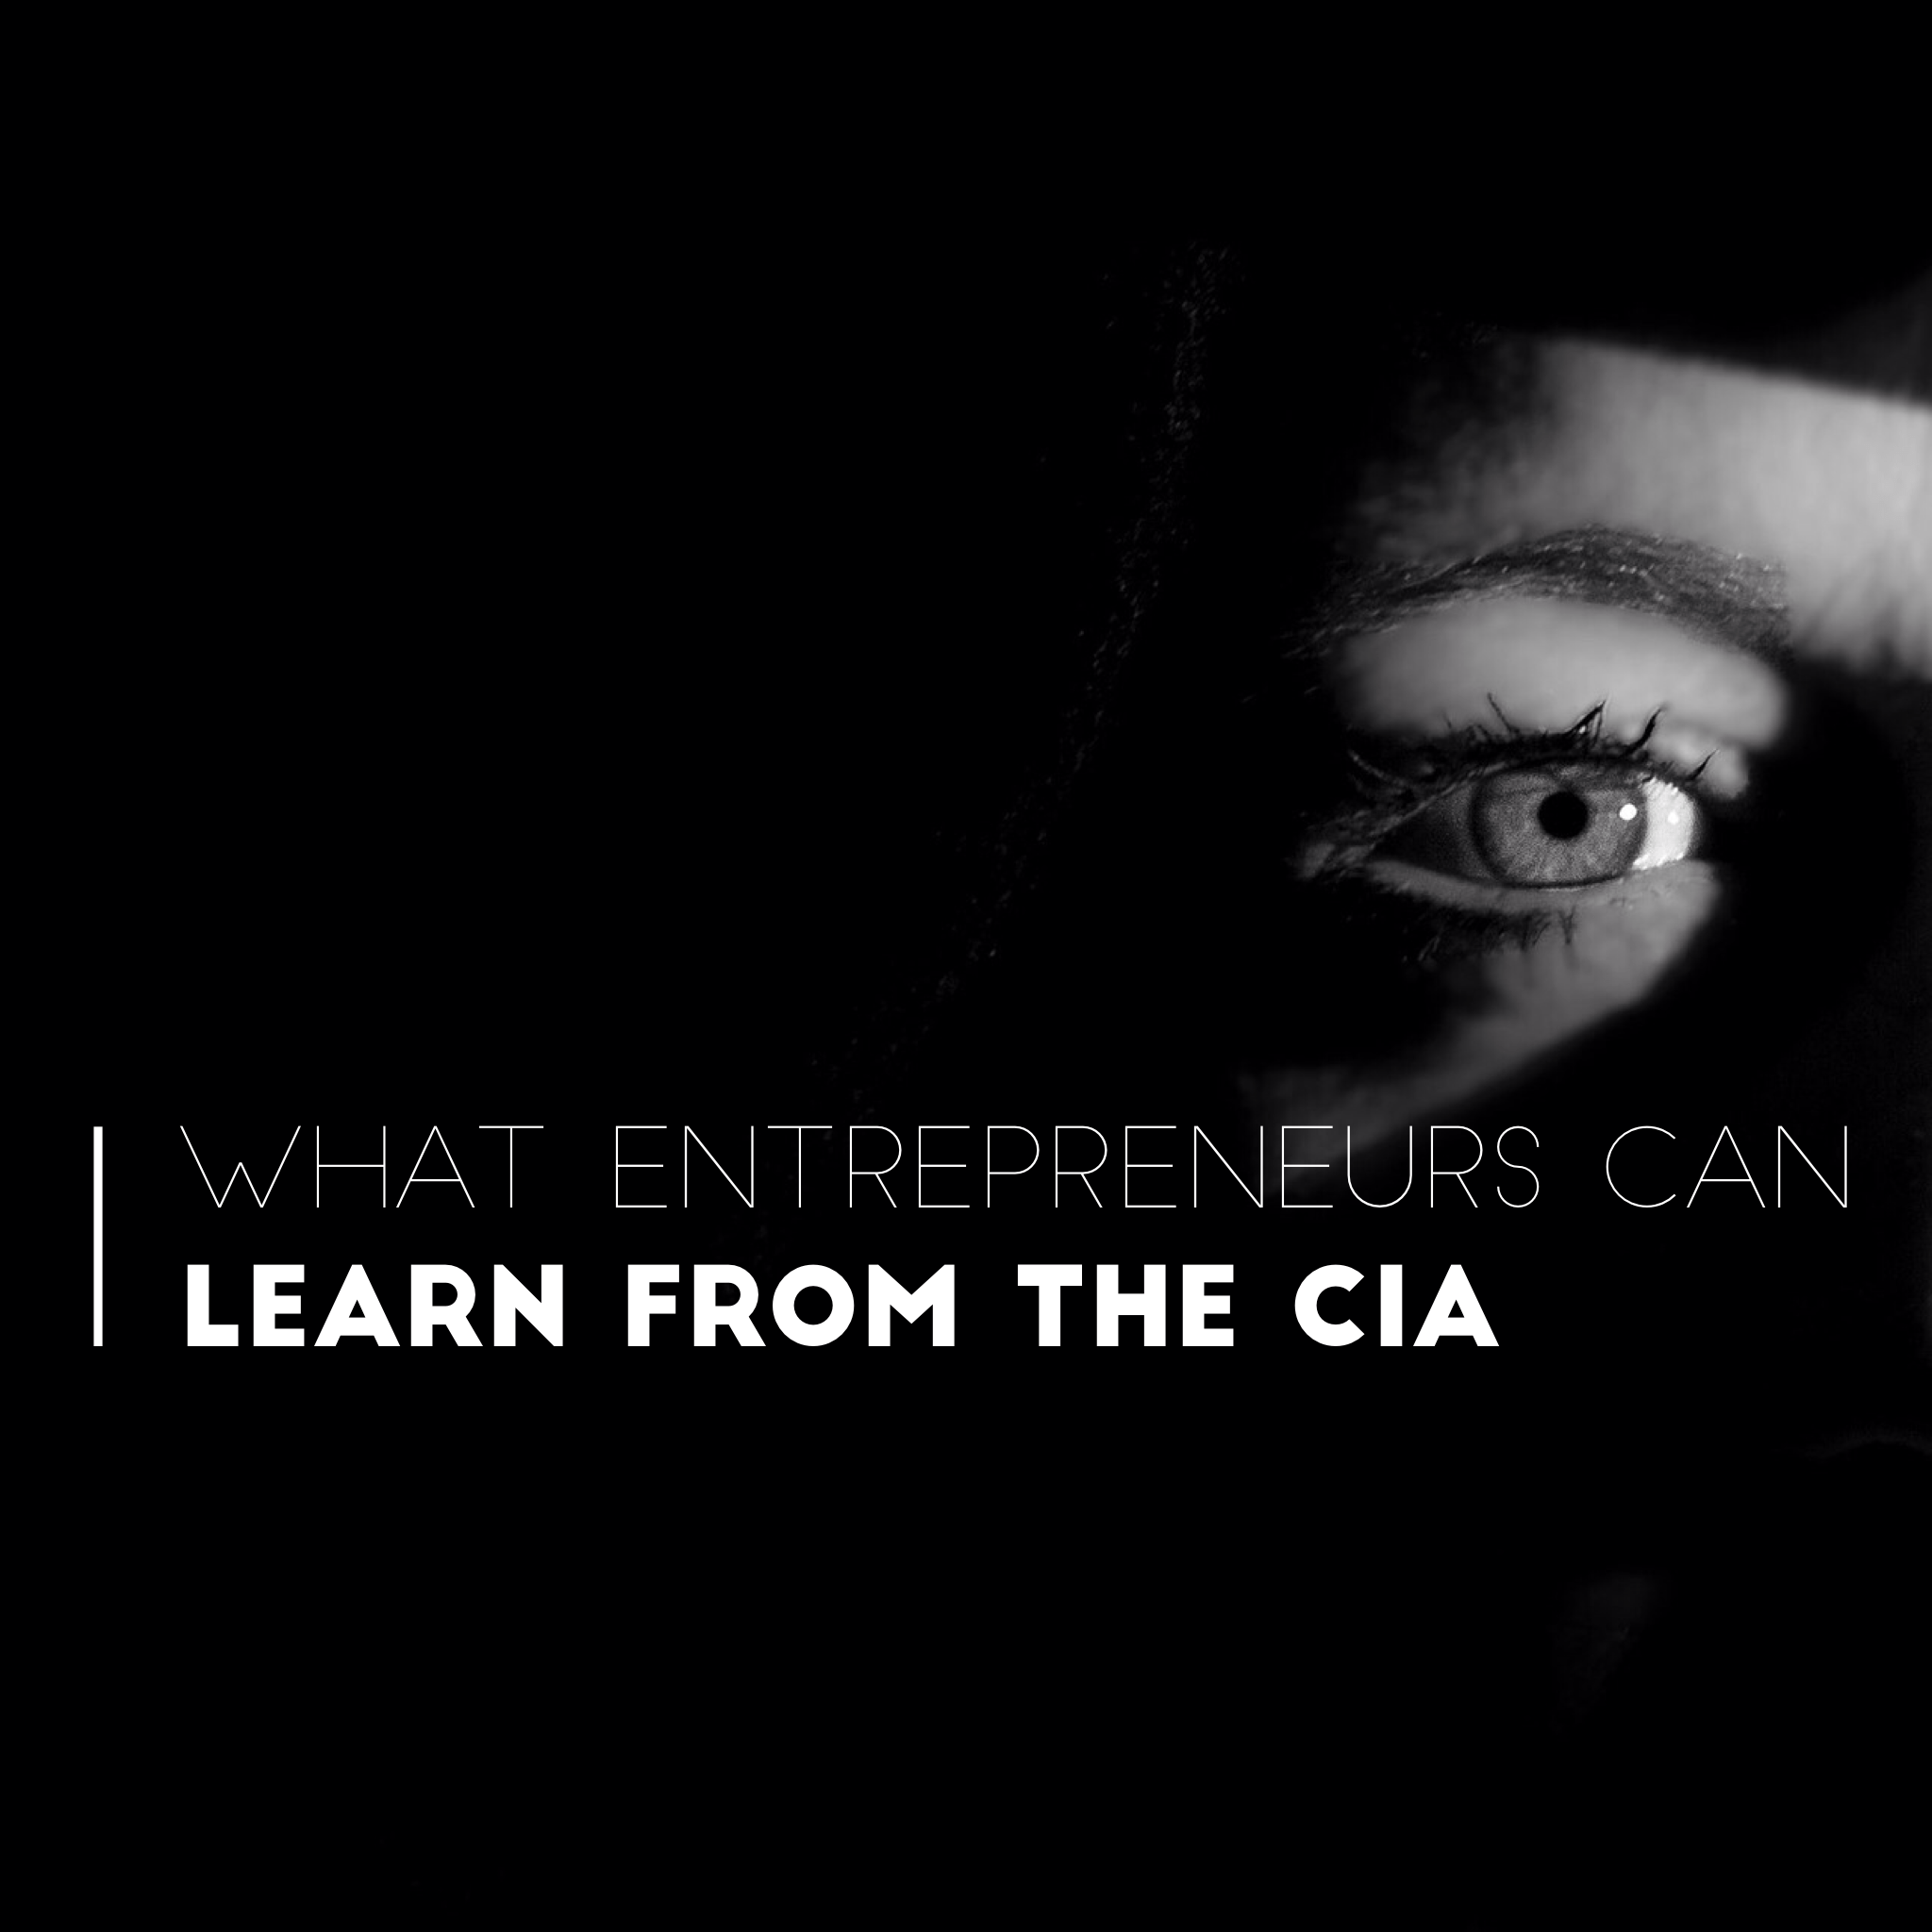 What Entrepreneurs Can Learn from the CIA